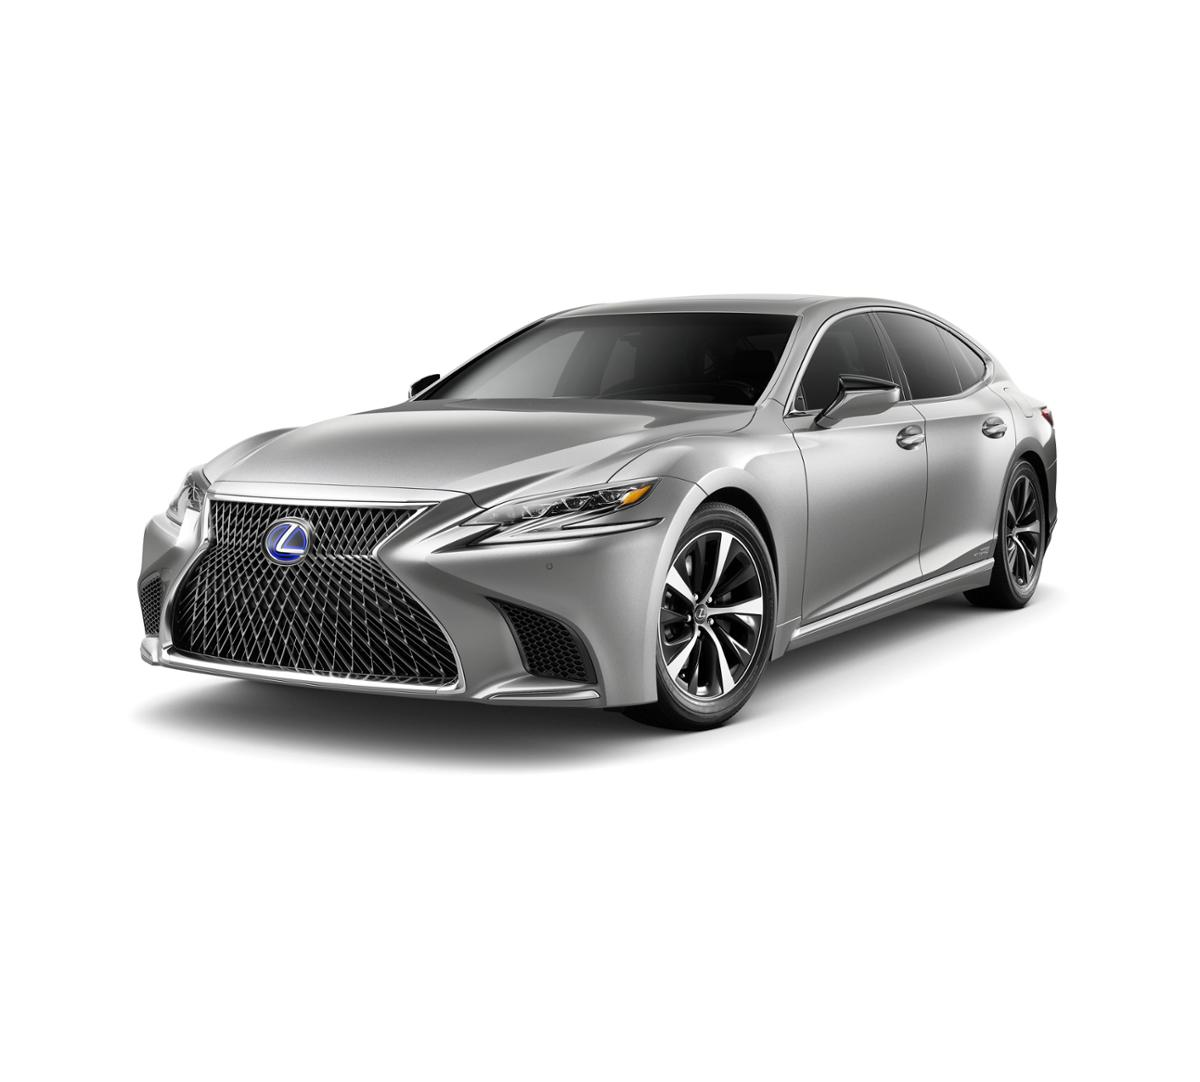 2019 Lexus LS 500h Vehicle Photo in Dallas, TX 75209